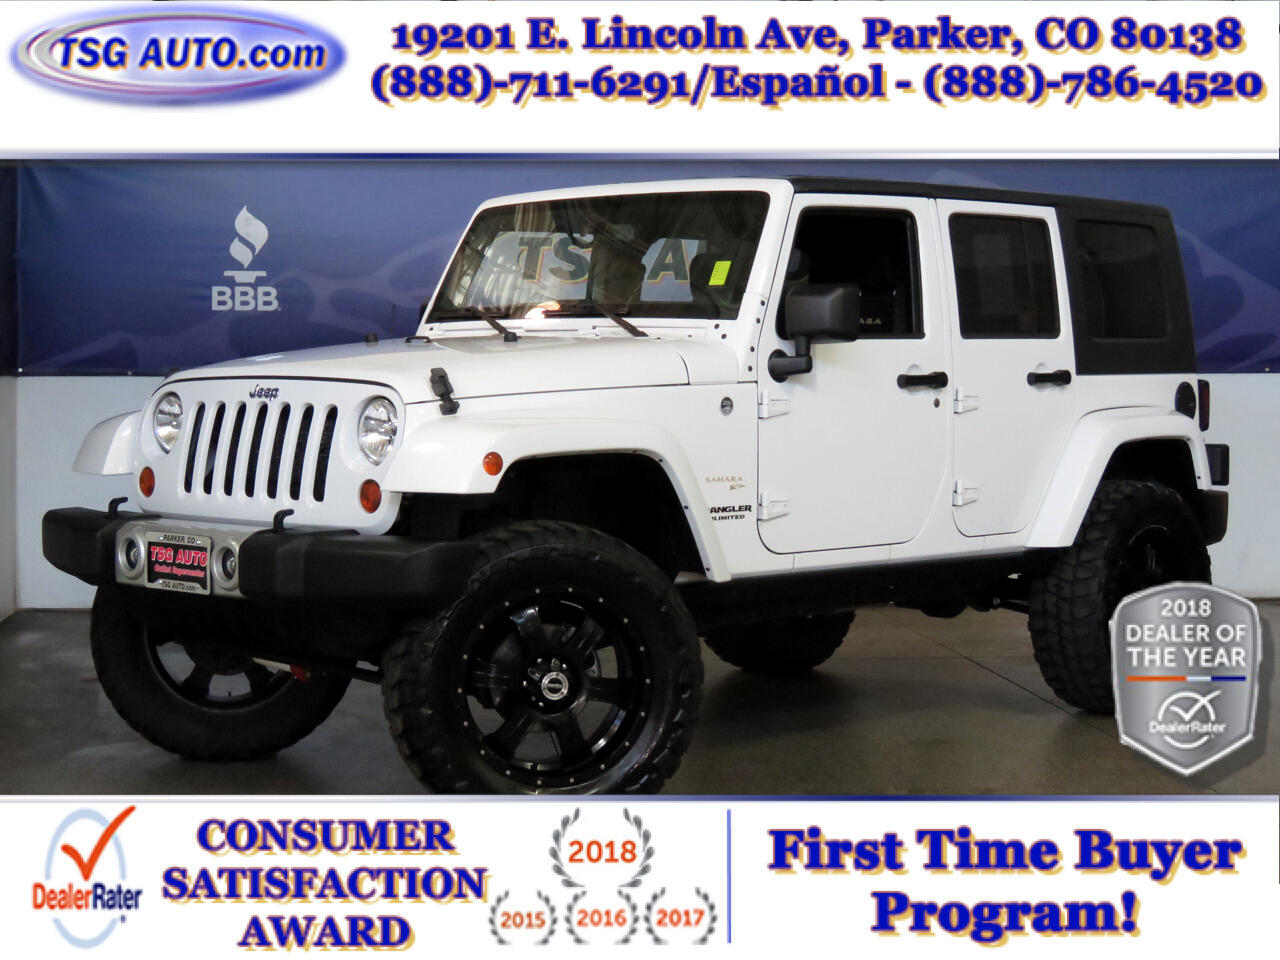 2013 Jeep Wrangler Unlimited 4WD 4dr Sahara W/Custom Lift/Wheels/Tires